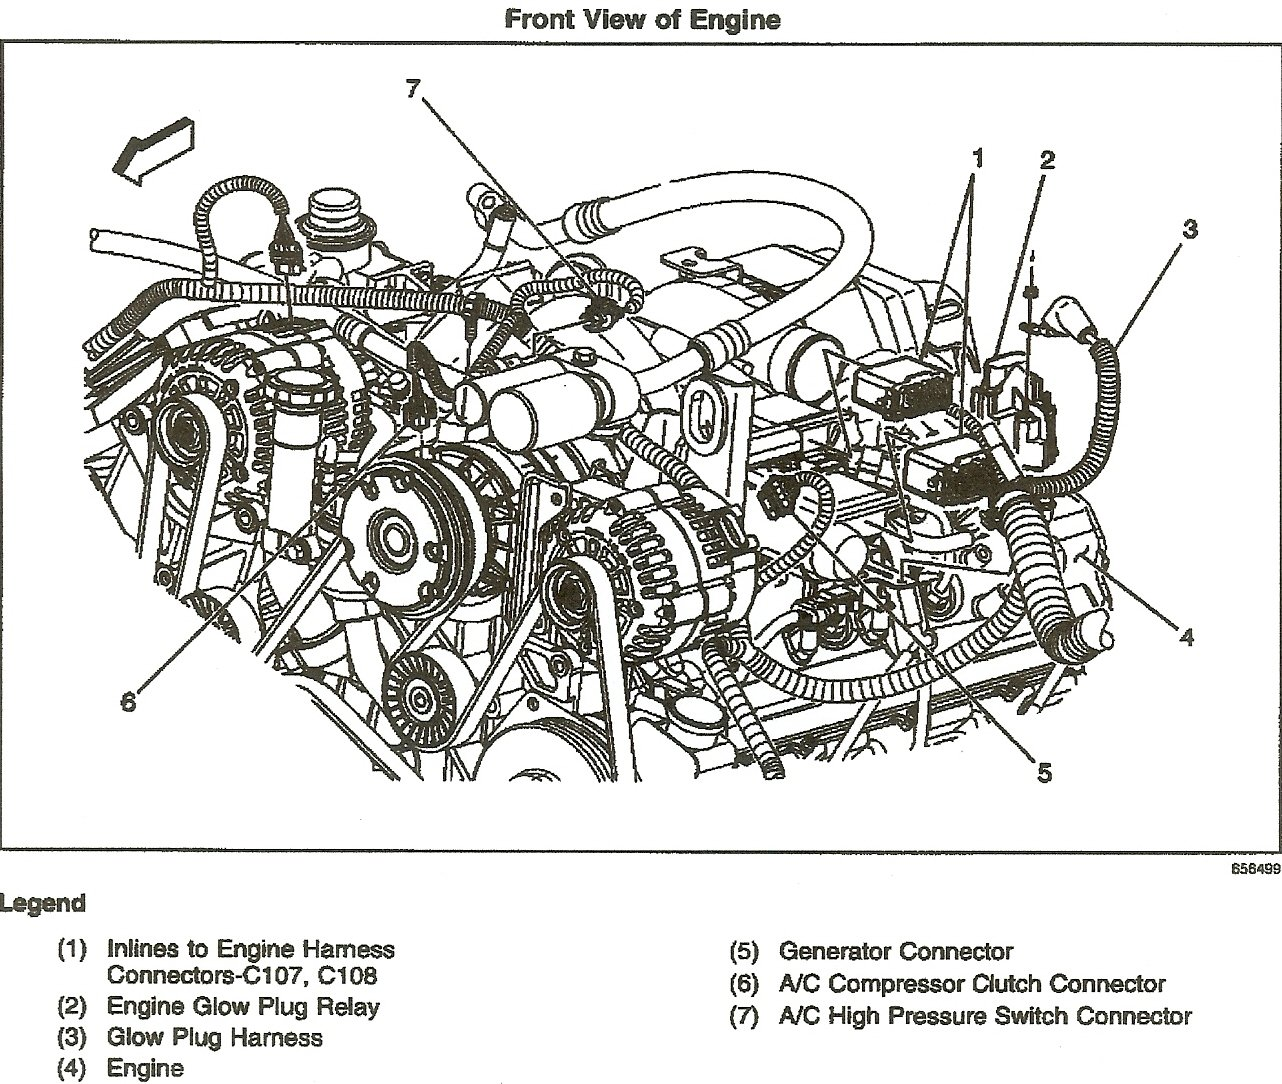 Duramax Diesel Engine Diagram Wiring Library